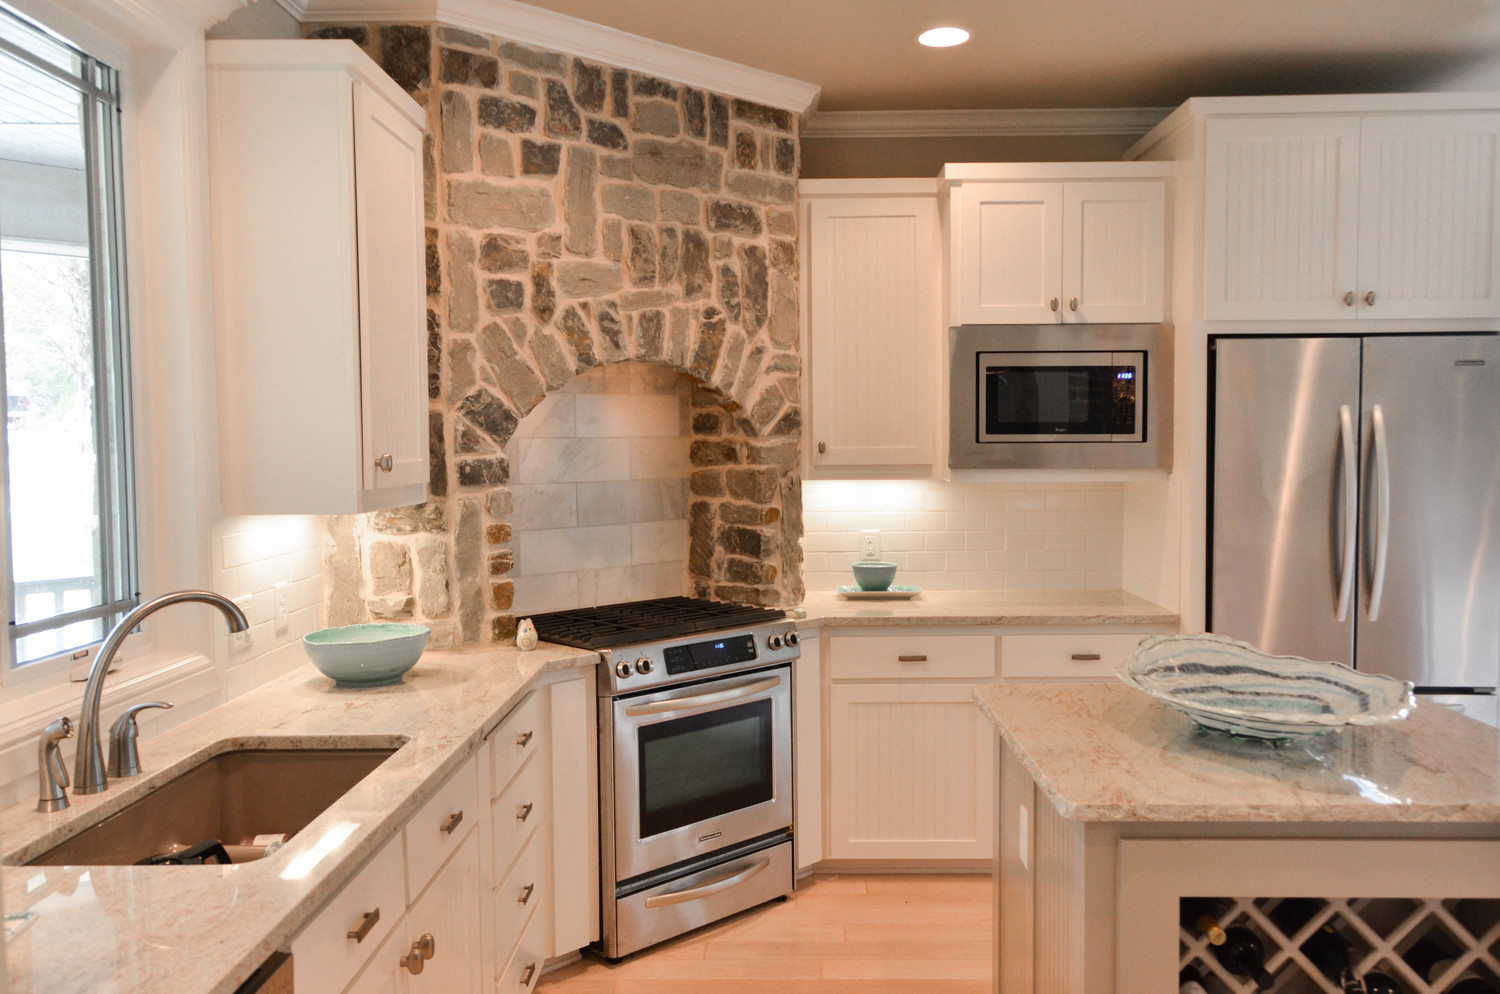 High end custom farmhouse kitchen. Granite counter tops with an island.